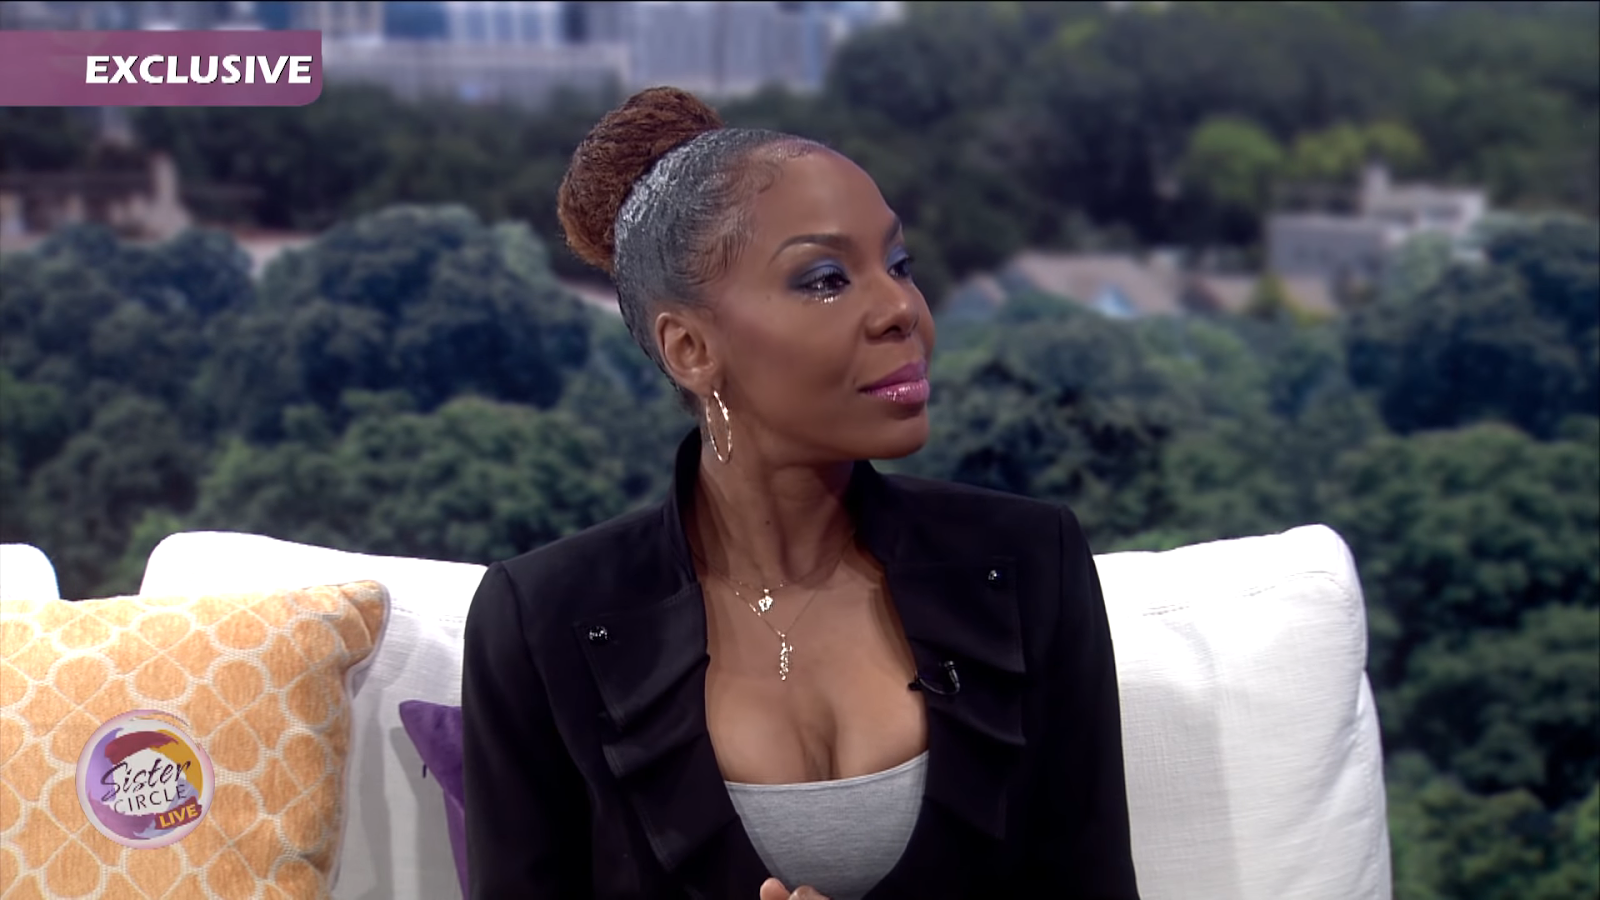 In Tearful Interview, R. Kelly's Ex-Wife Finally Speaks About Her Own Years of Abuse With the Singer